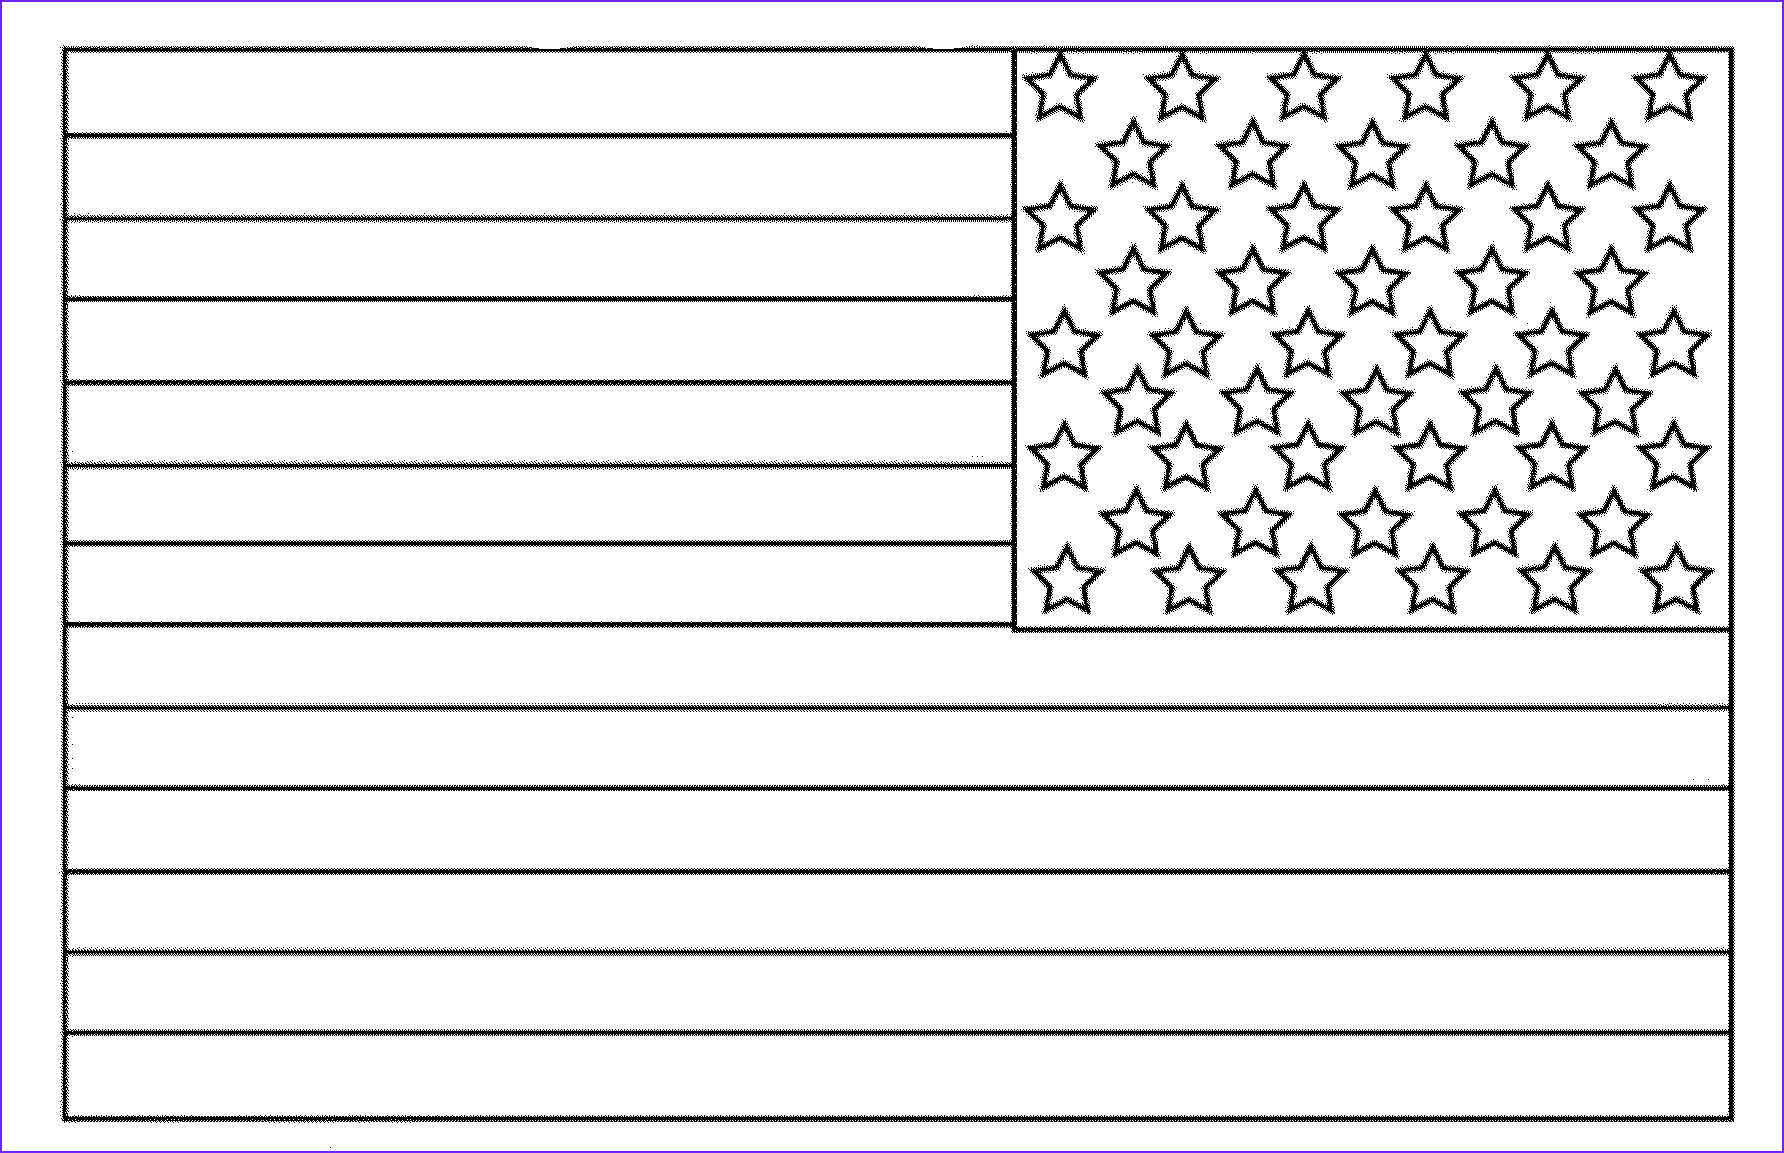 American Flag Coloring Page Best Of Collection American Flag Coloring Page for the Love Of the Country